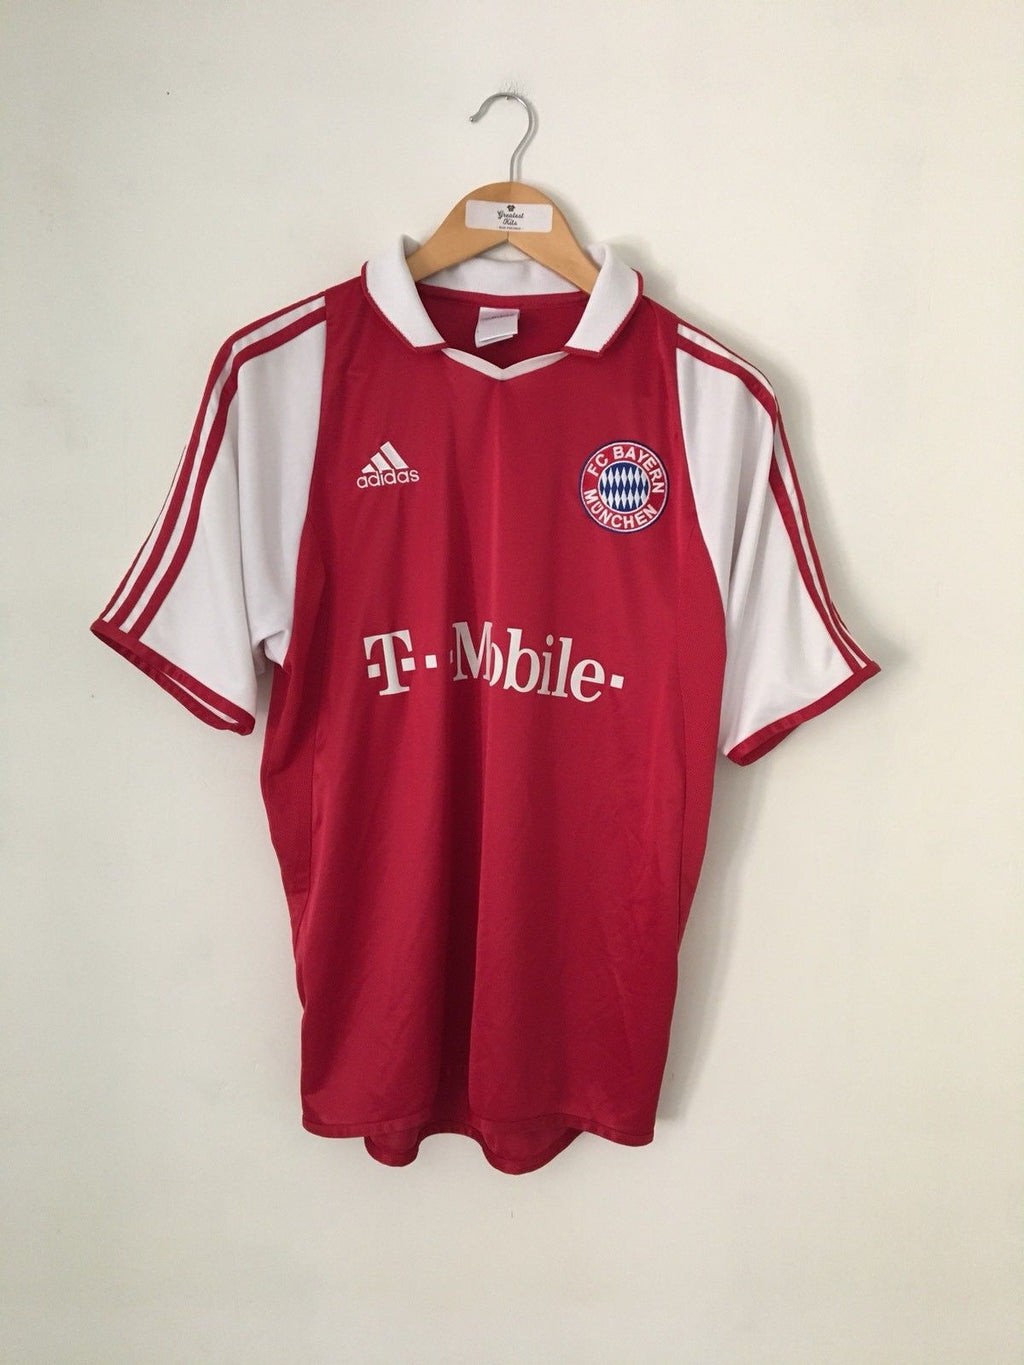 2003/04 Bayern Munich Home Shirt (S) 9/10